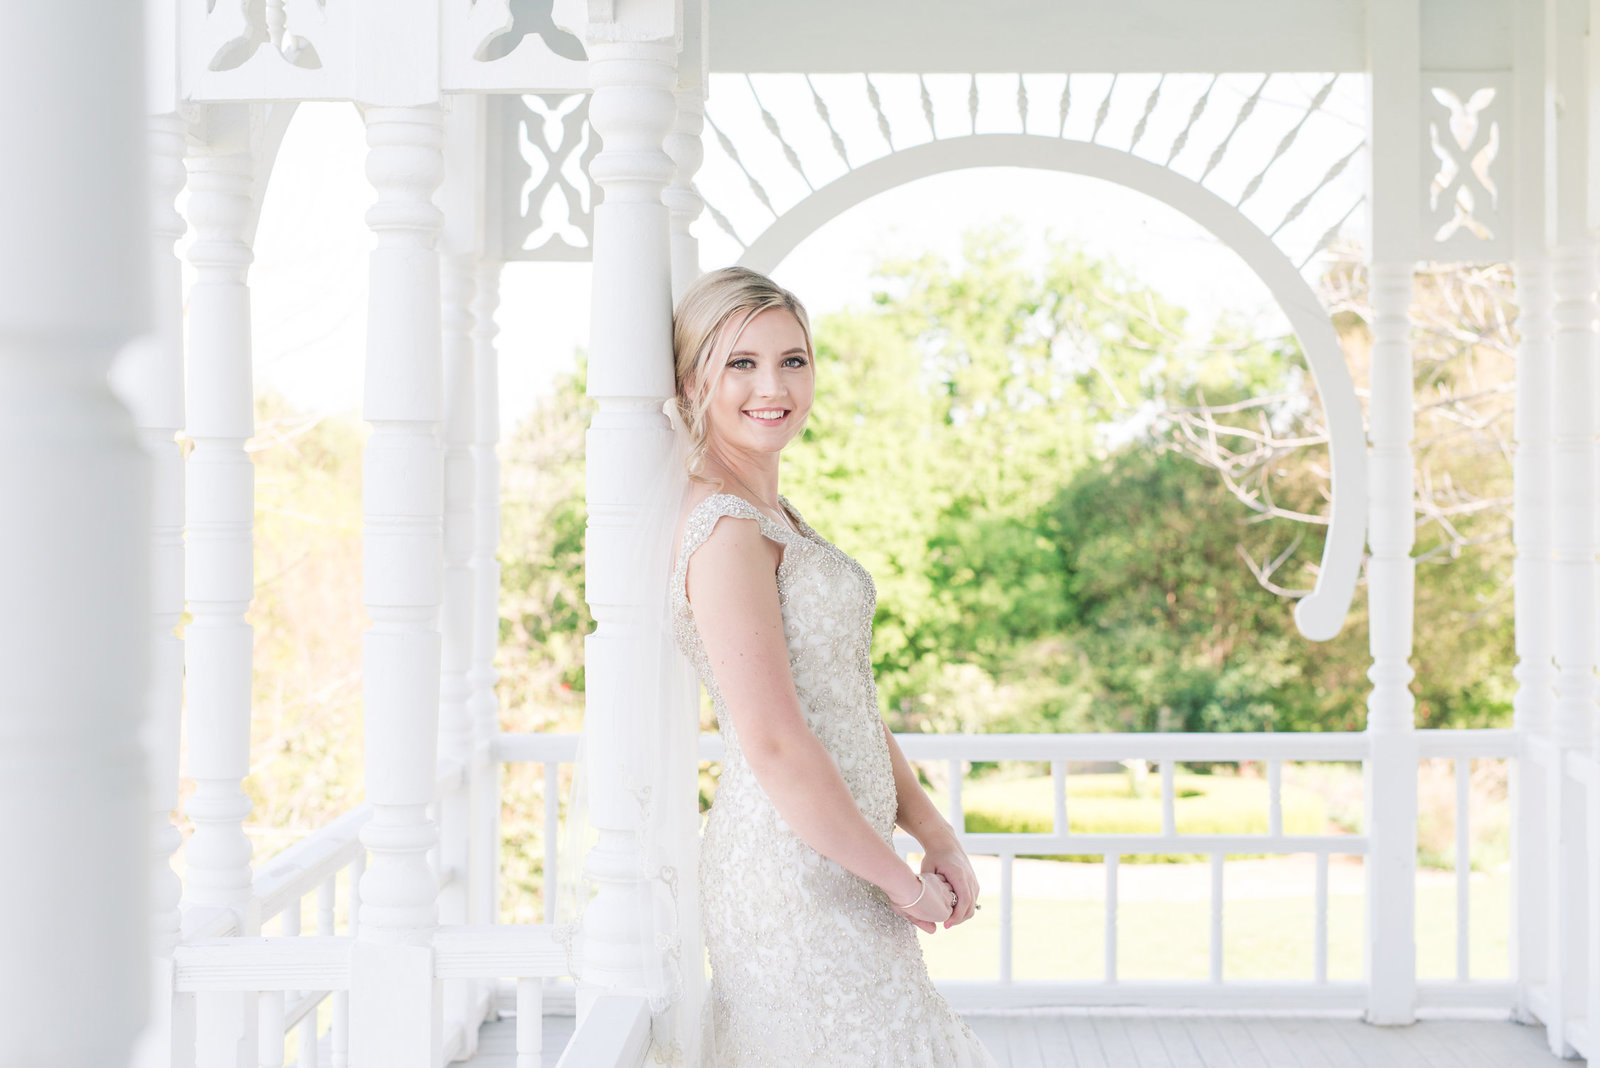 Barr Mansion Bridal Portraits